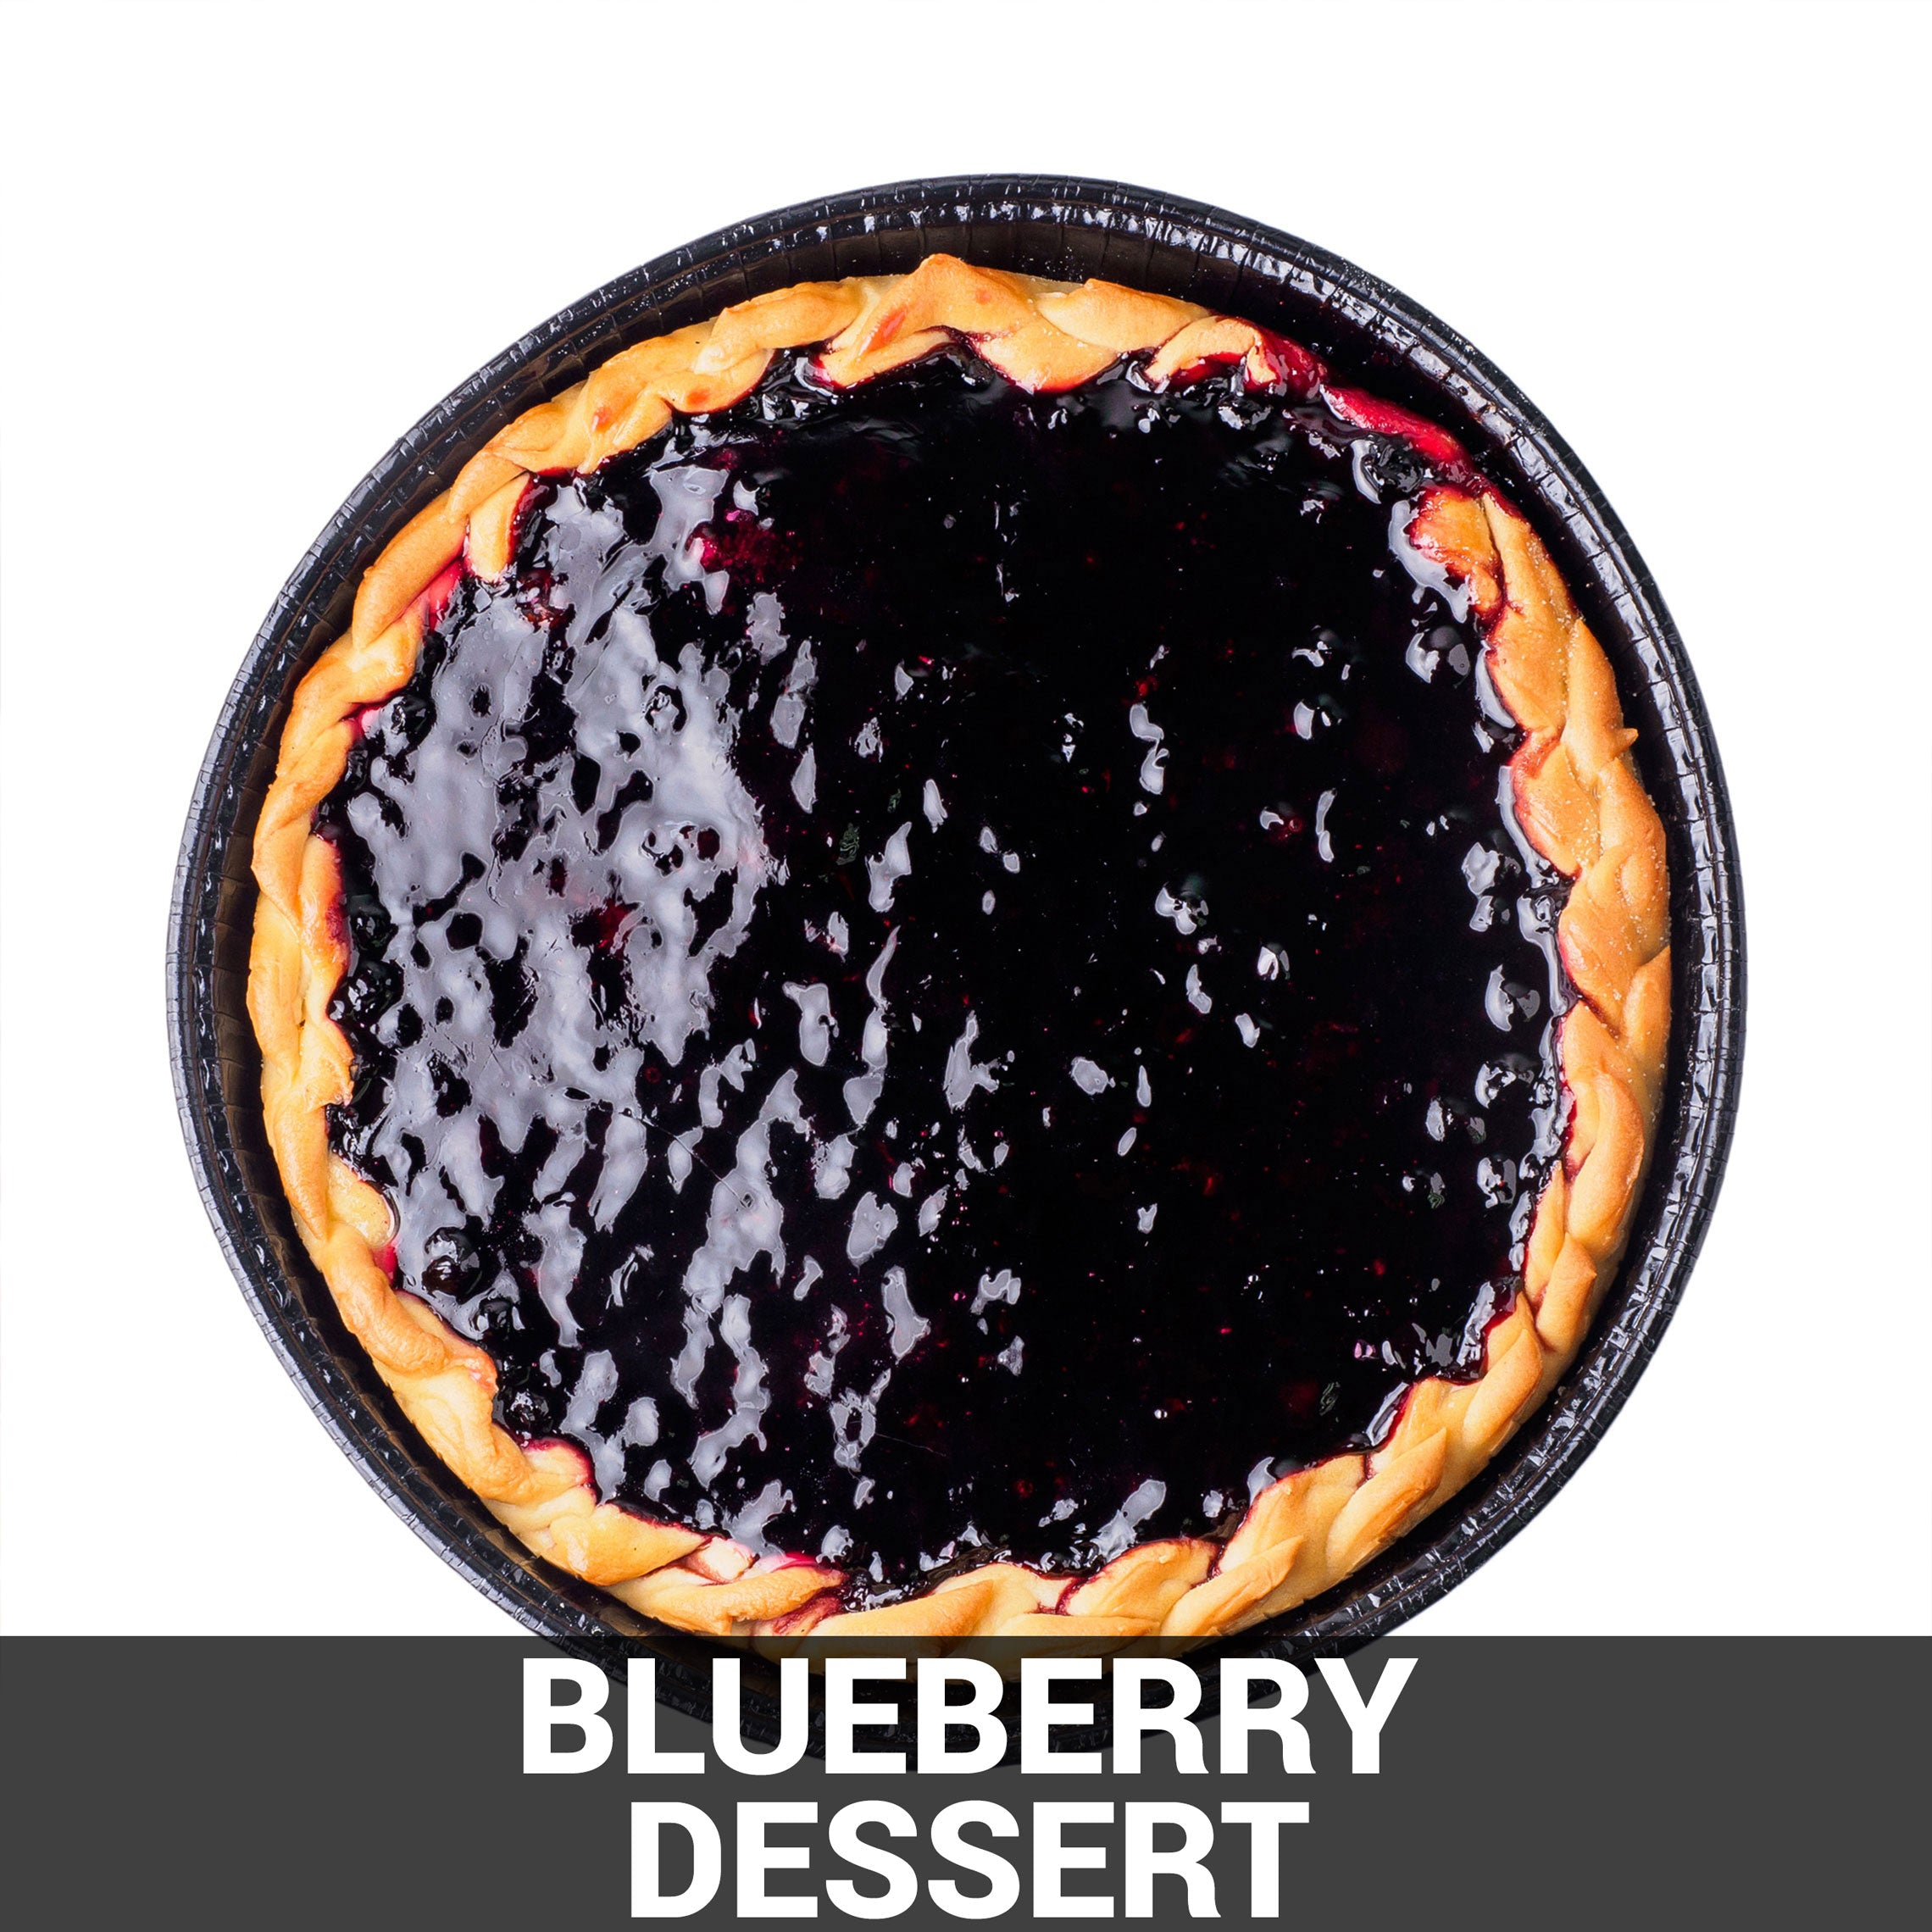 Blueberry Dessert Recipe - Foods Alive